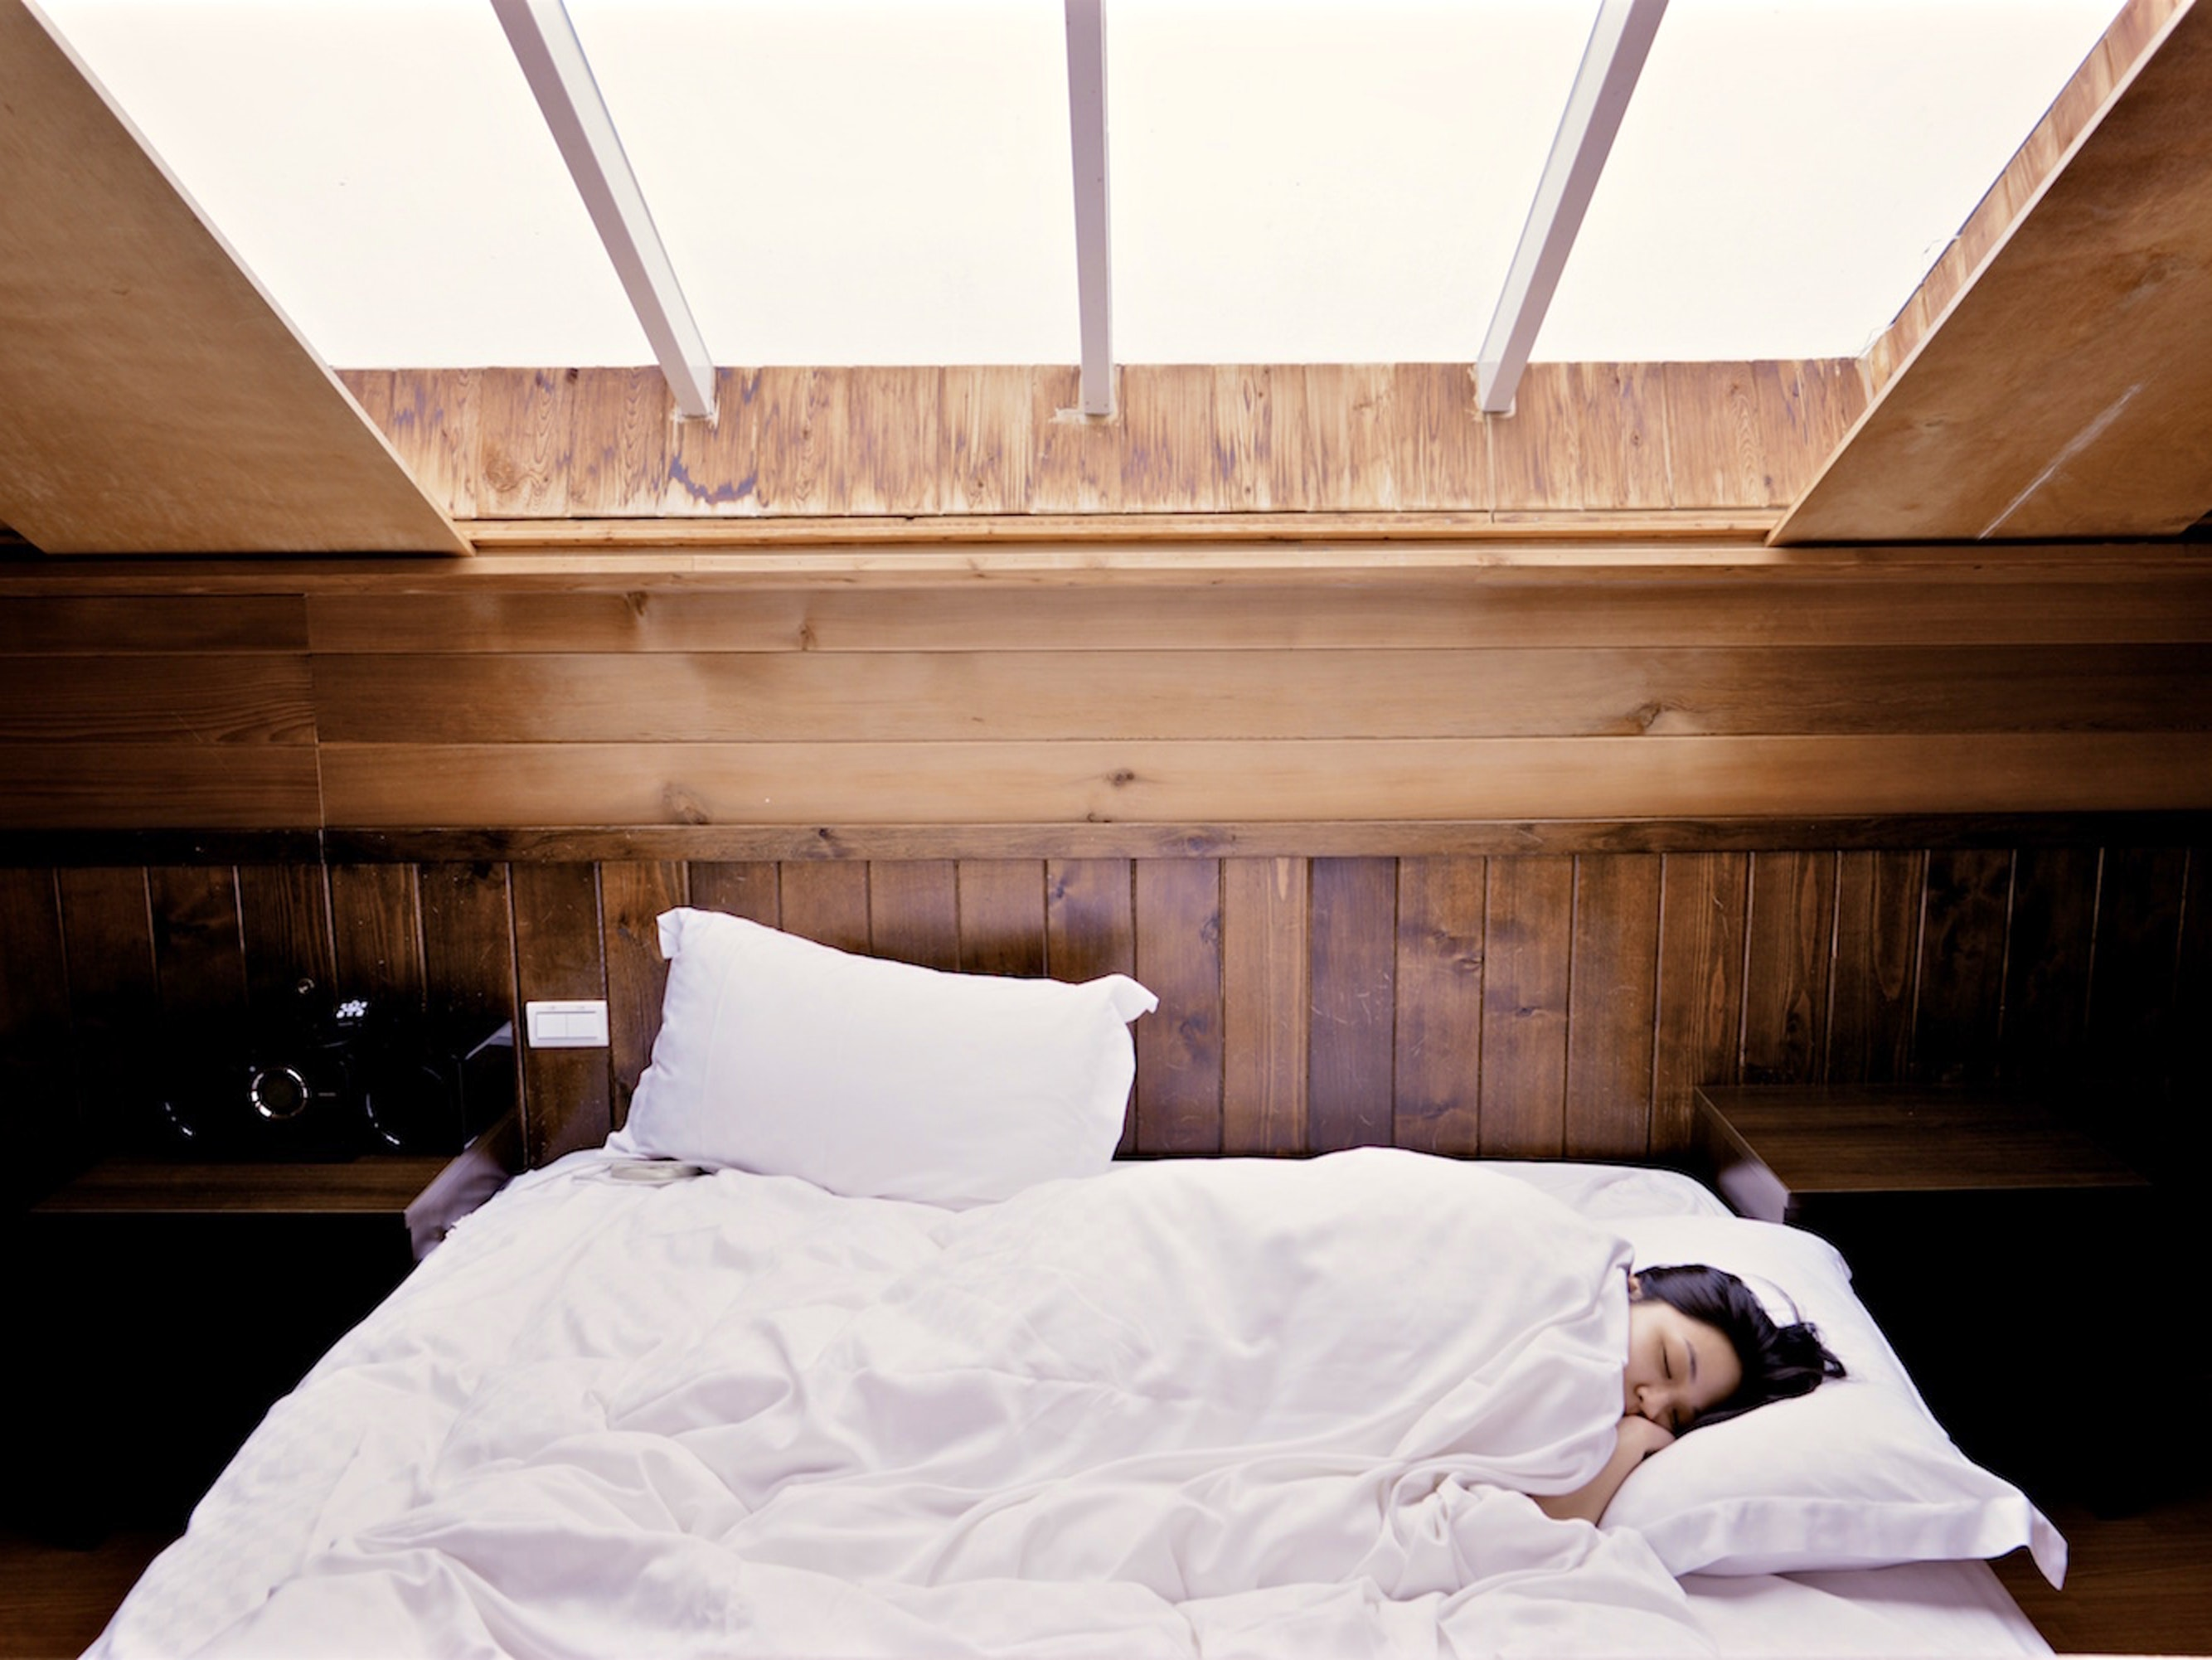 Big Data Says Young People Live Well...in Bed